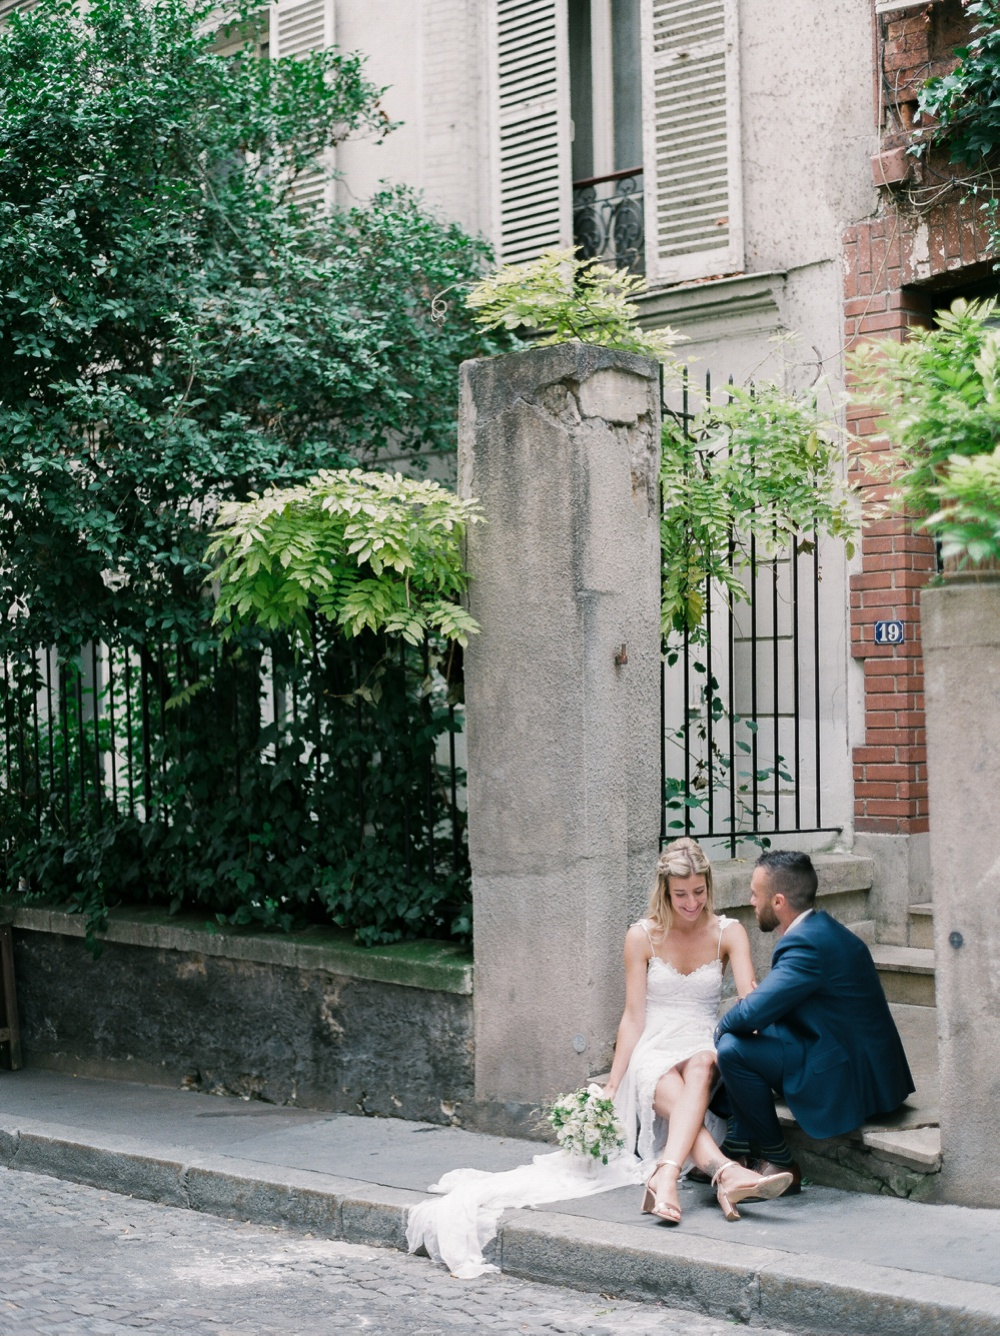 Paris_Elopement_wedding_Photographer©MadalinaSheldon_0063.jpg